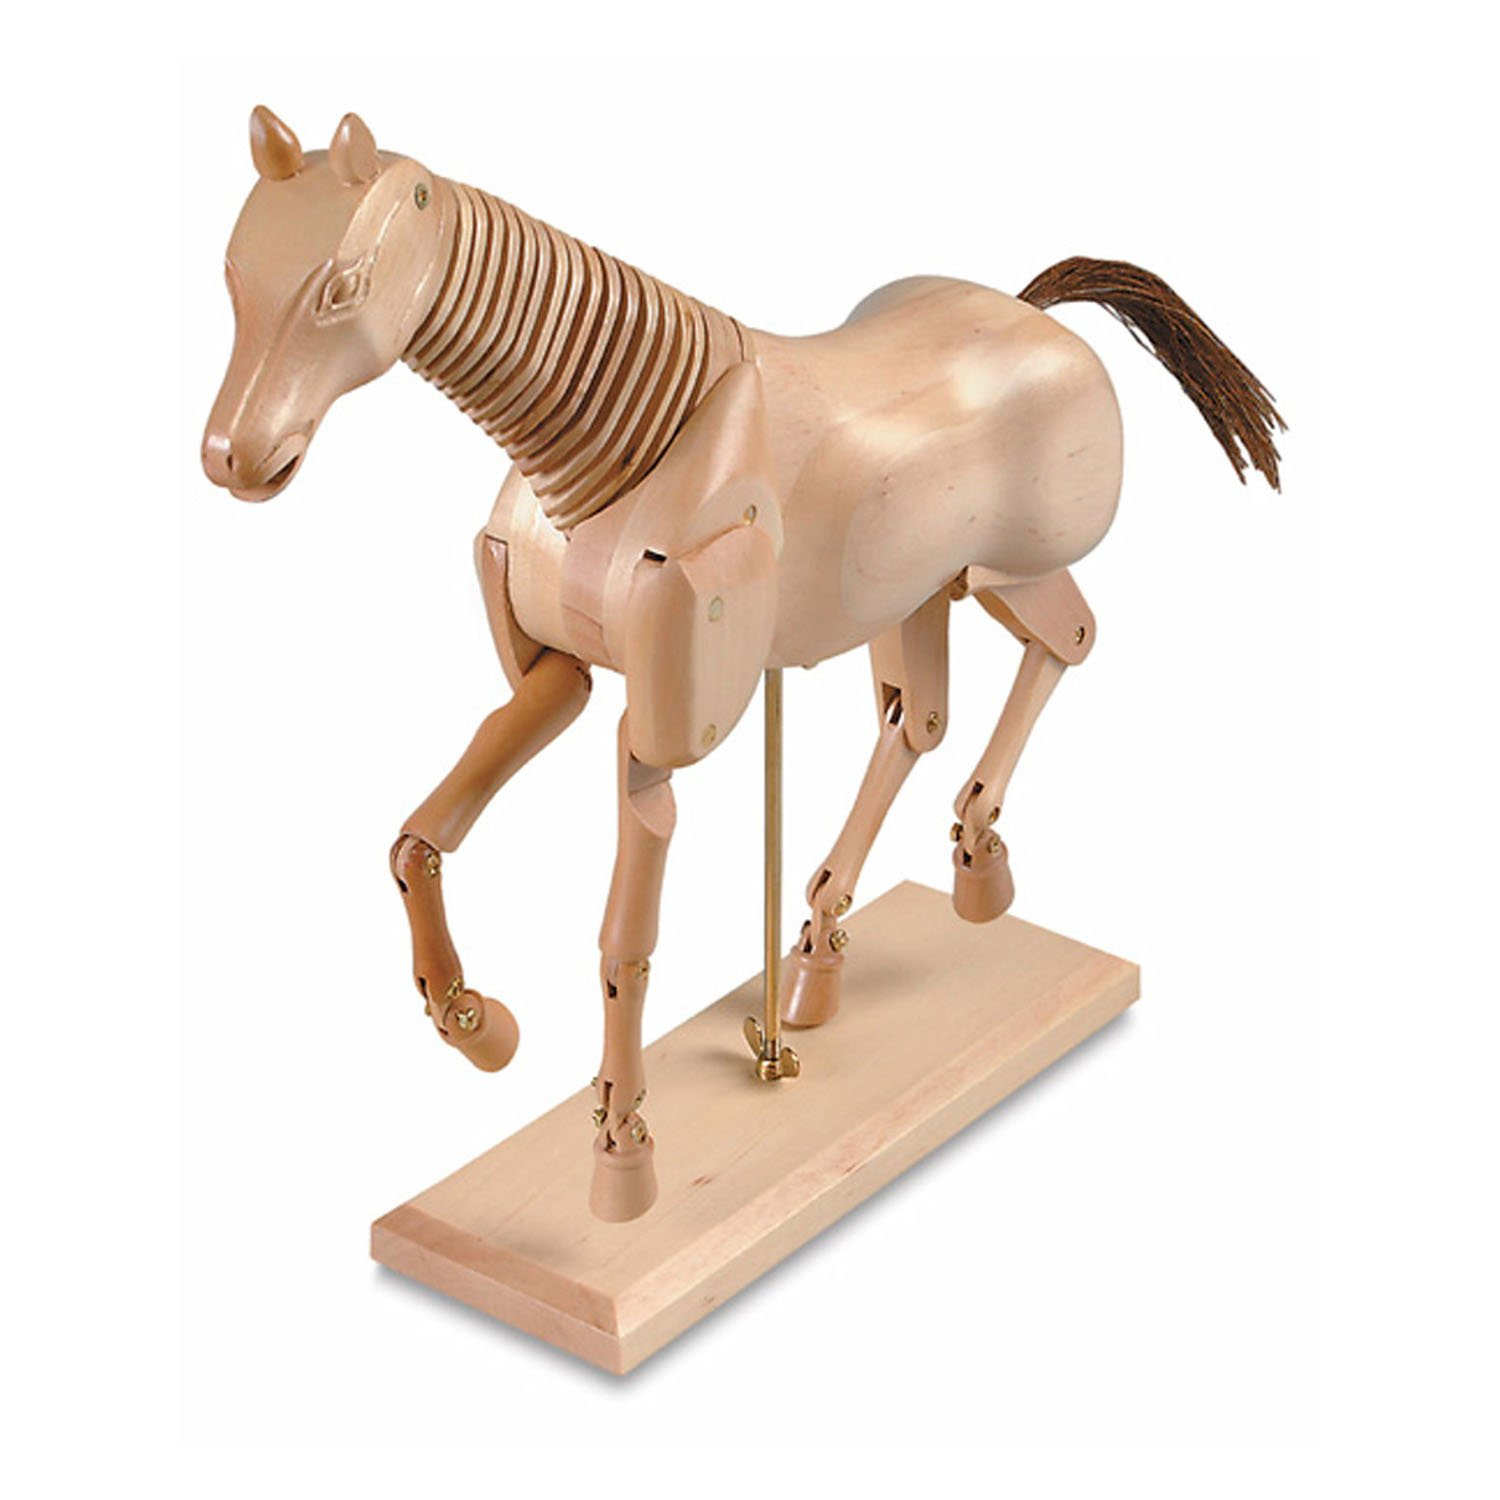 Posable Horse Mannequin for Teen Girls Who Love to Draw Horses